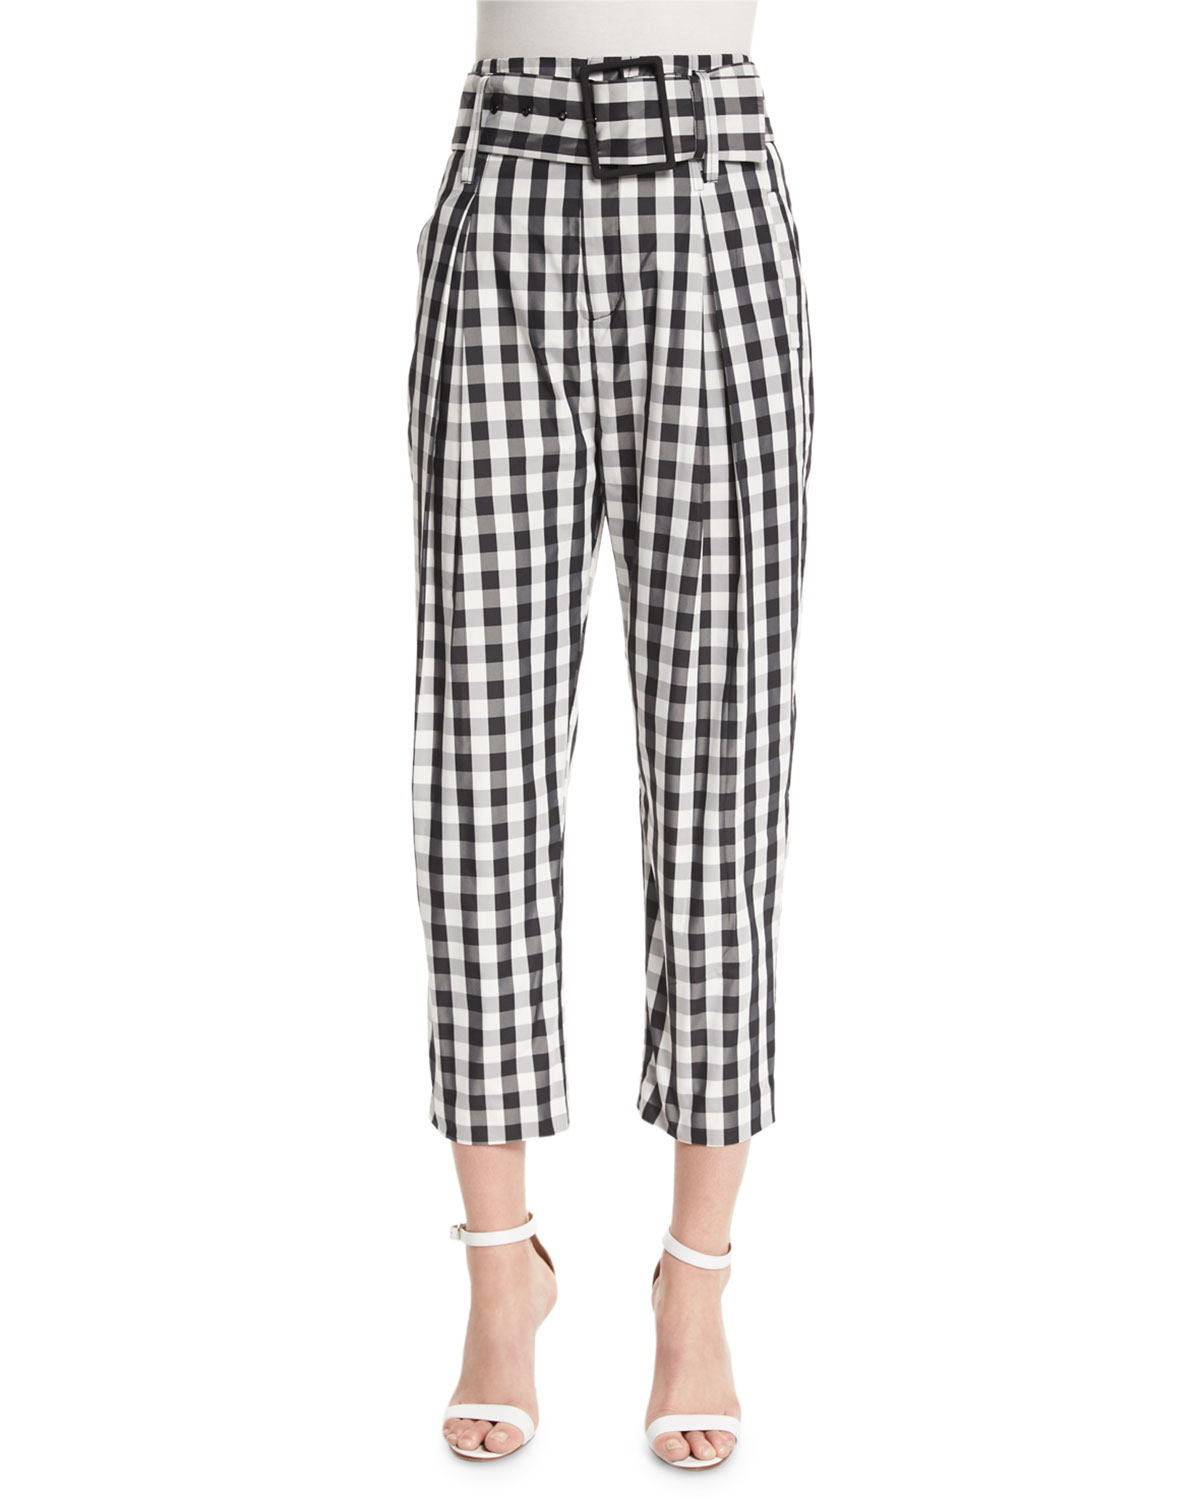 4e462d031ad92 Kendall + Kylie High-waist Belted Cropped Trousers in Black - Lyst